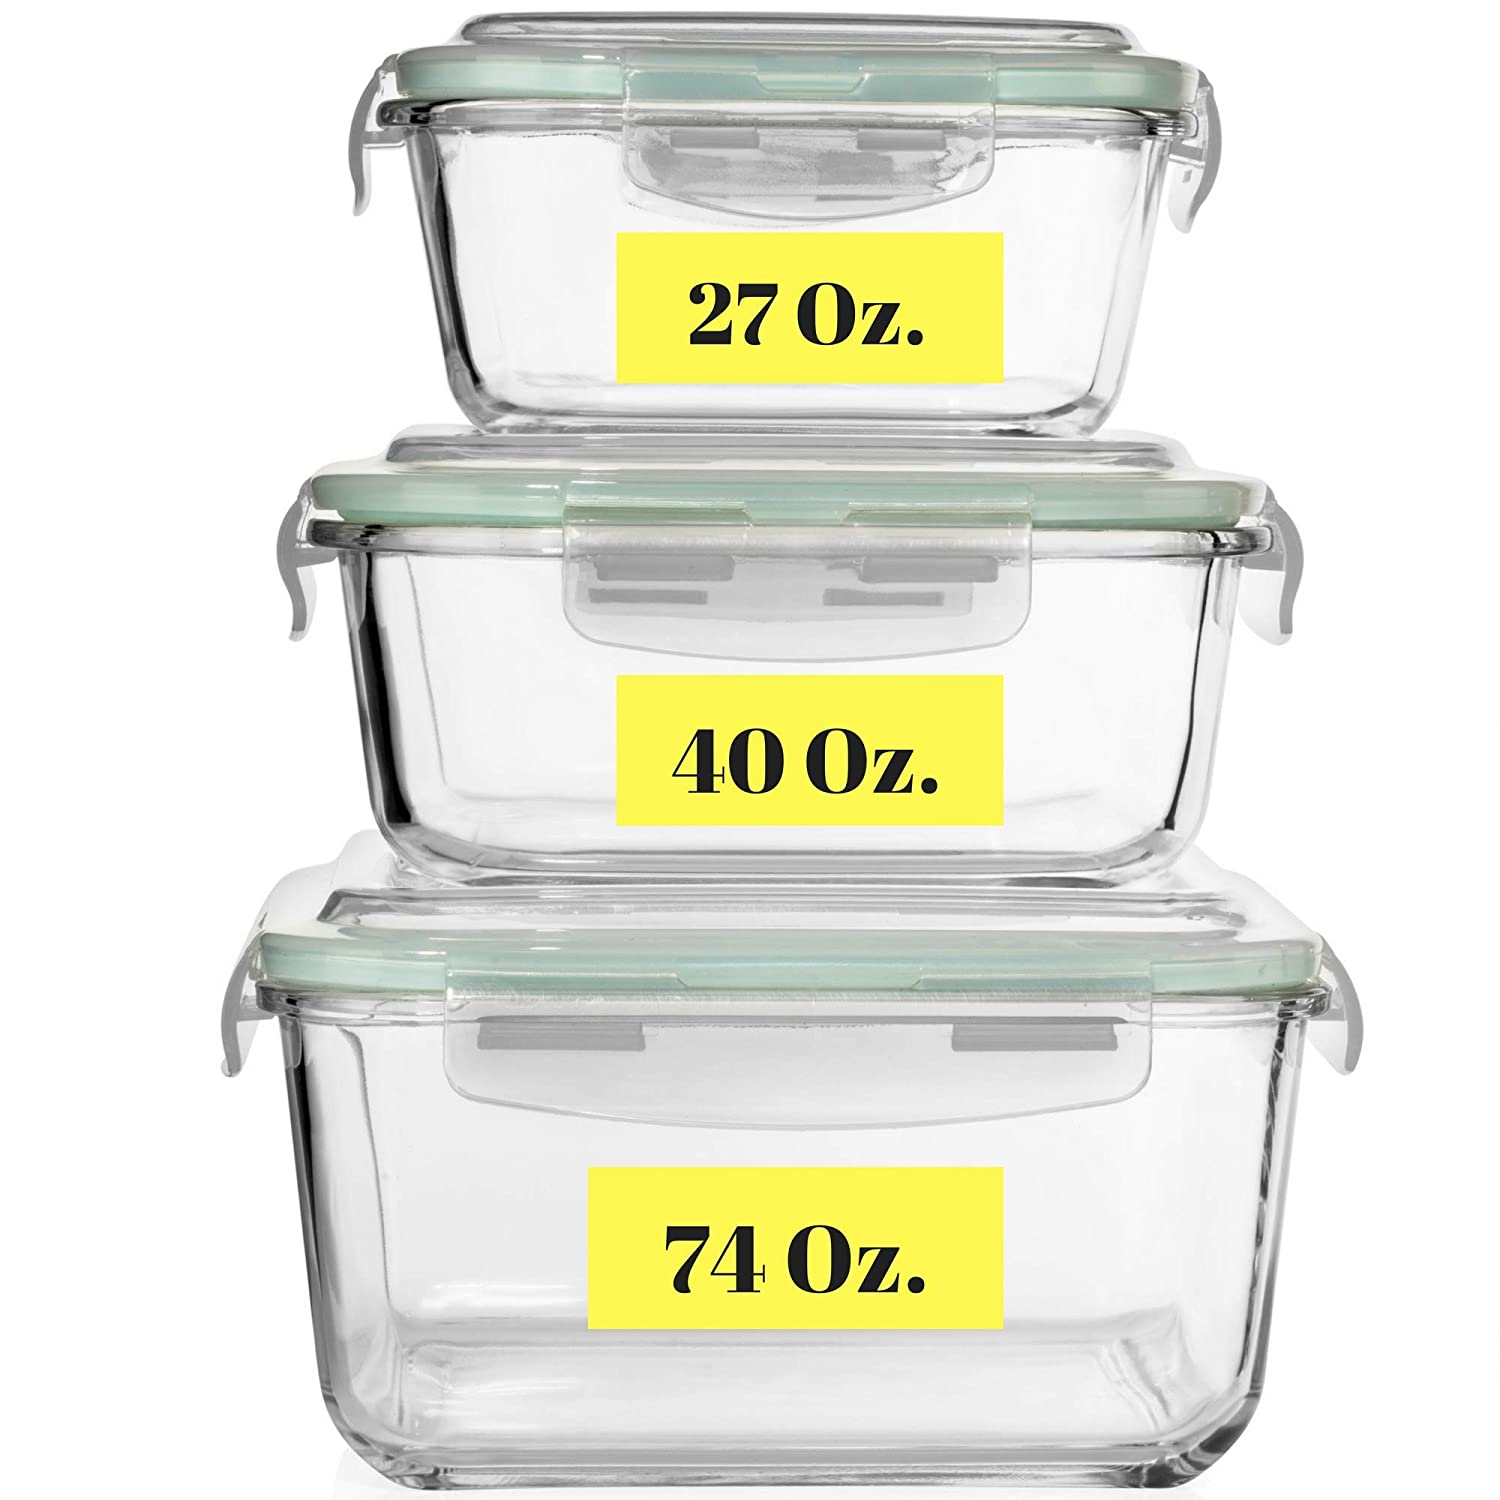 Extra Large Glass Food Storage Containers with Airtight Lid 6 Pc [3 containers with lids] Microwave/Oven/Freezer & Dishwasher Safe. BPA/PVC Free X-Large/Large/Medium Size Reusable Square container set